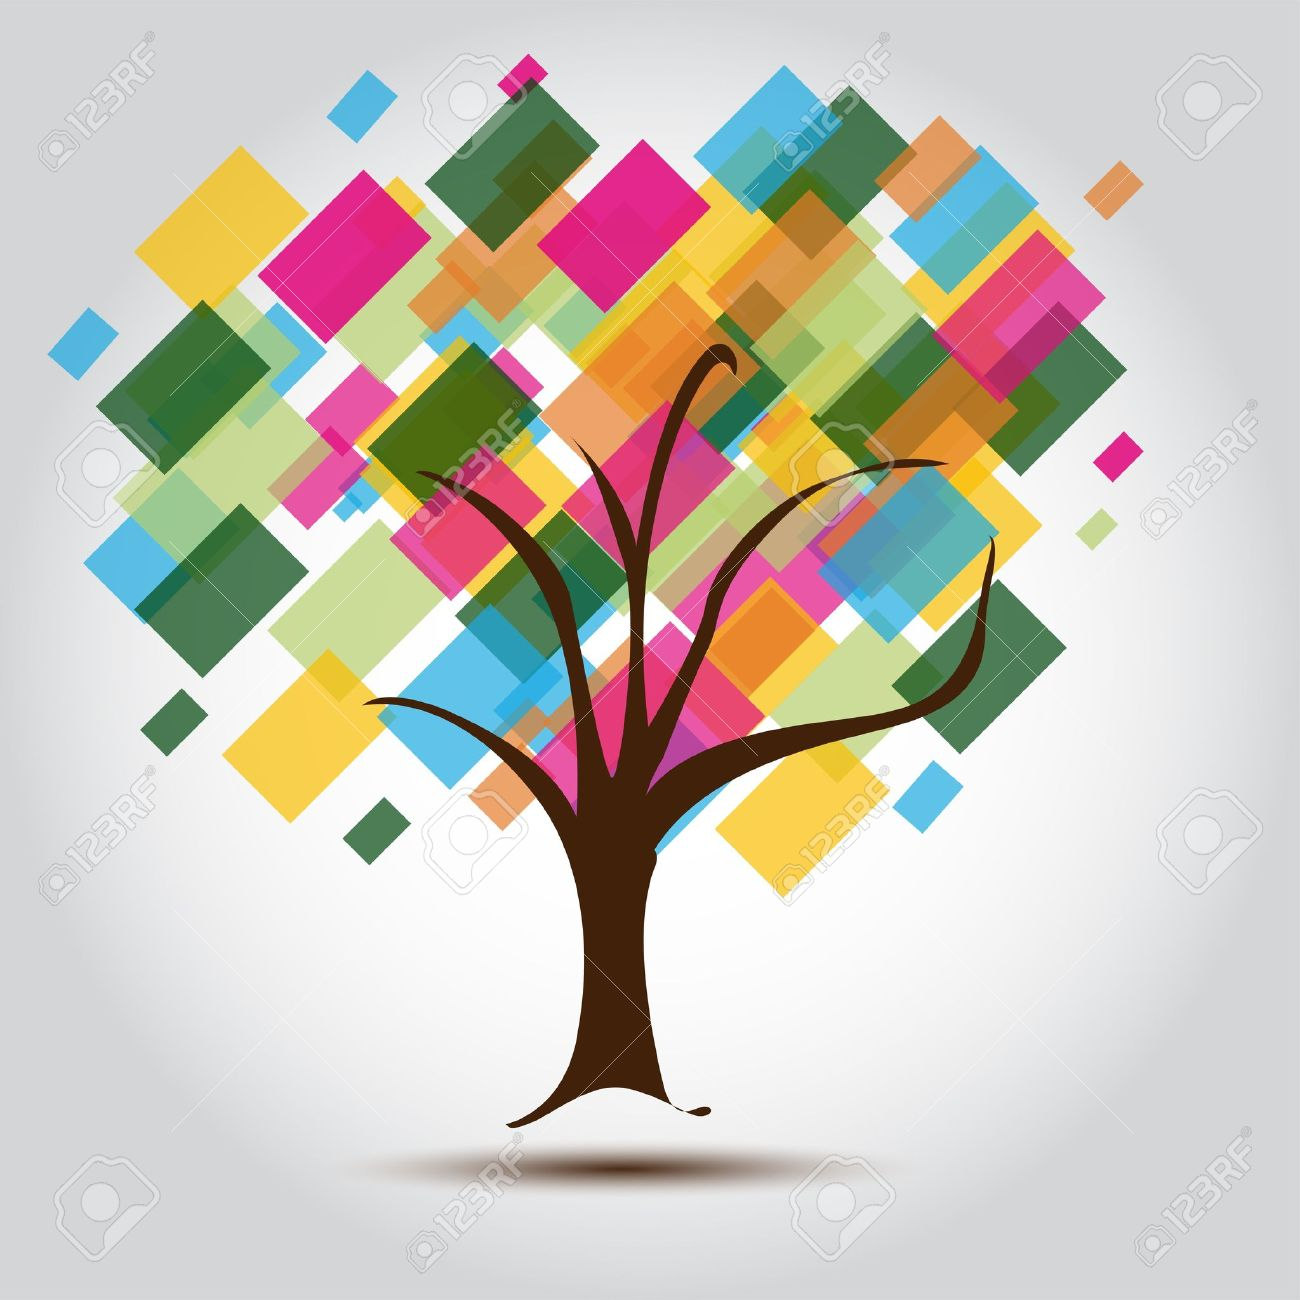 multicolored tree for business card background for stationary